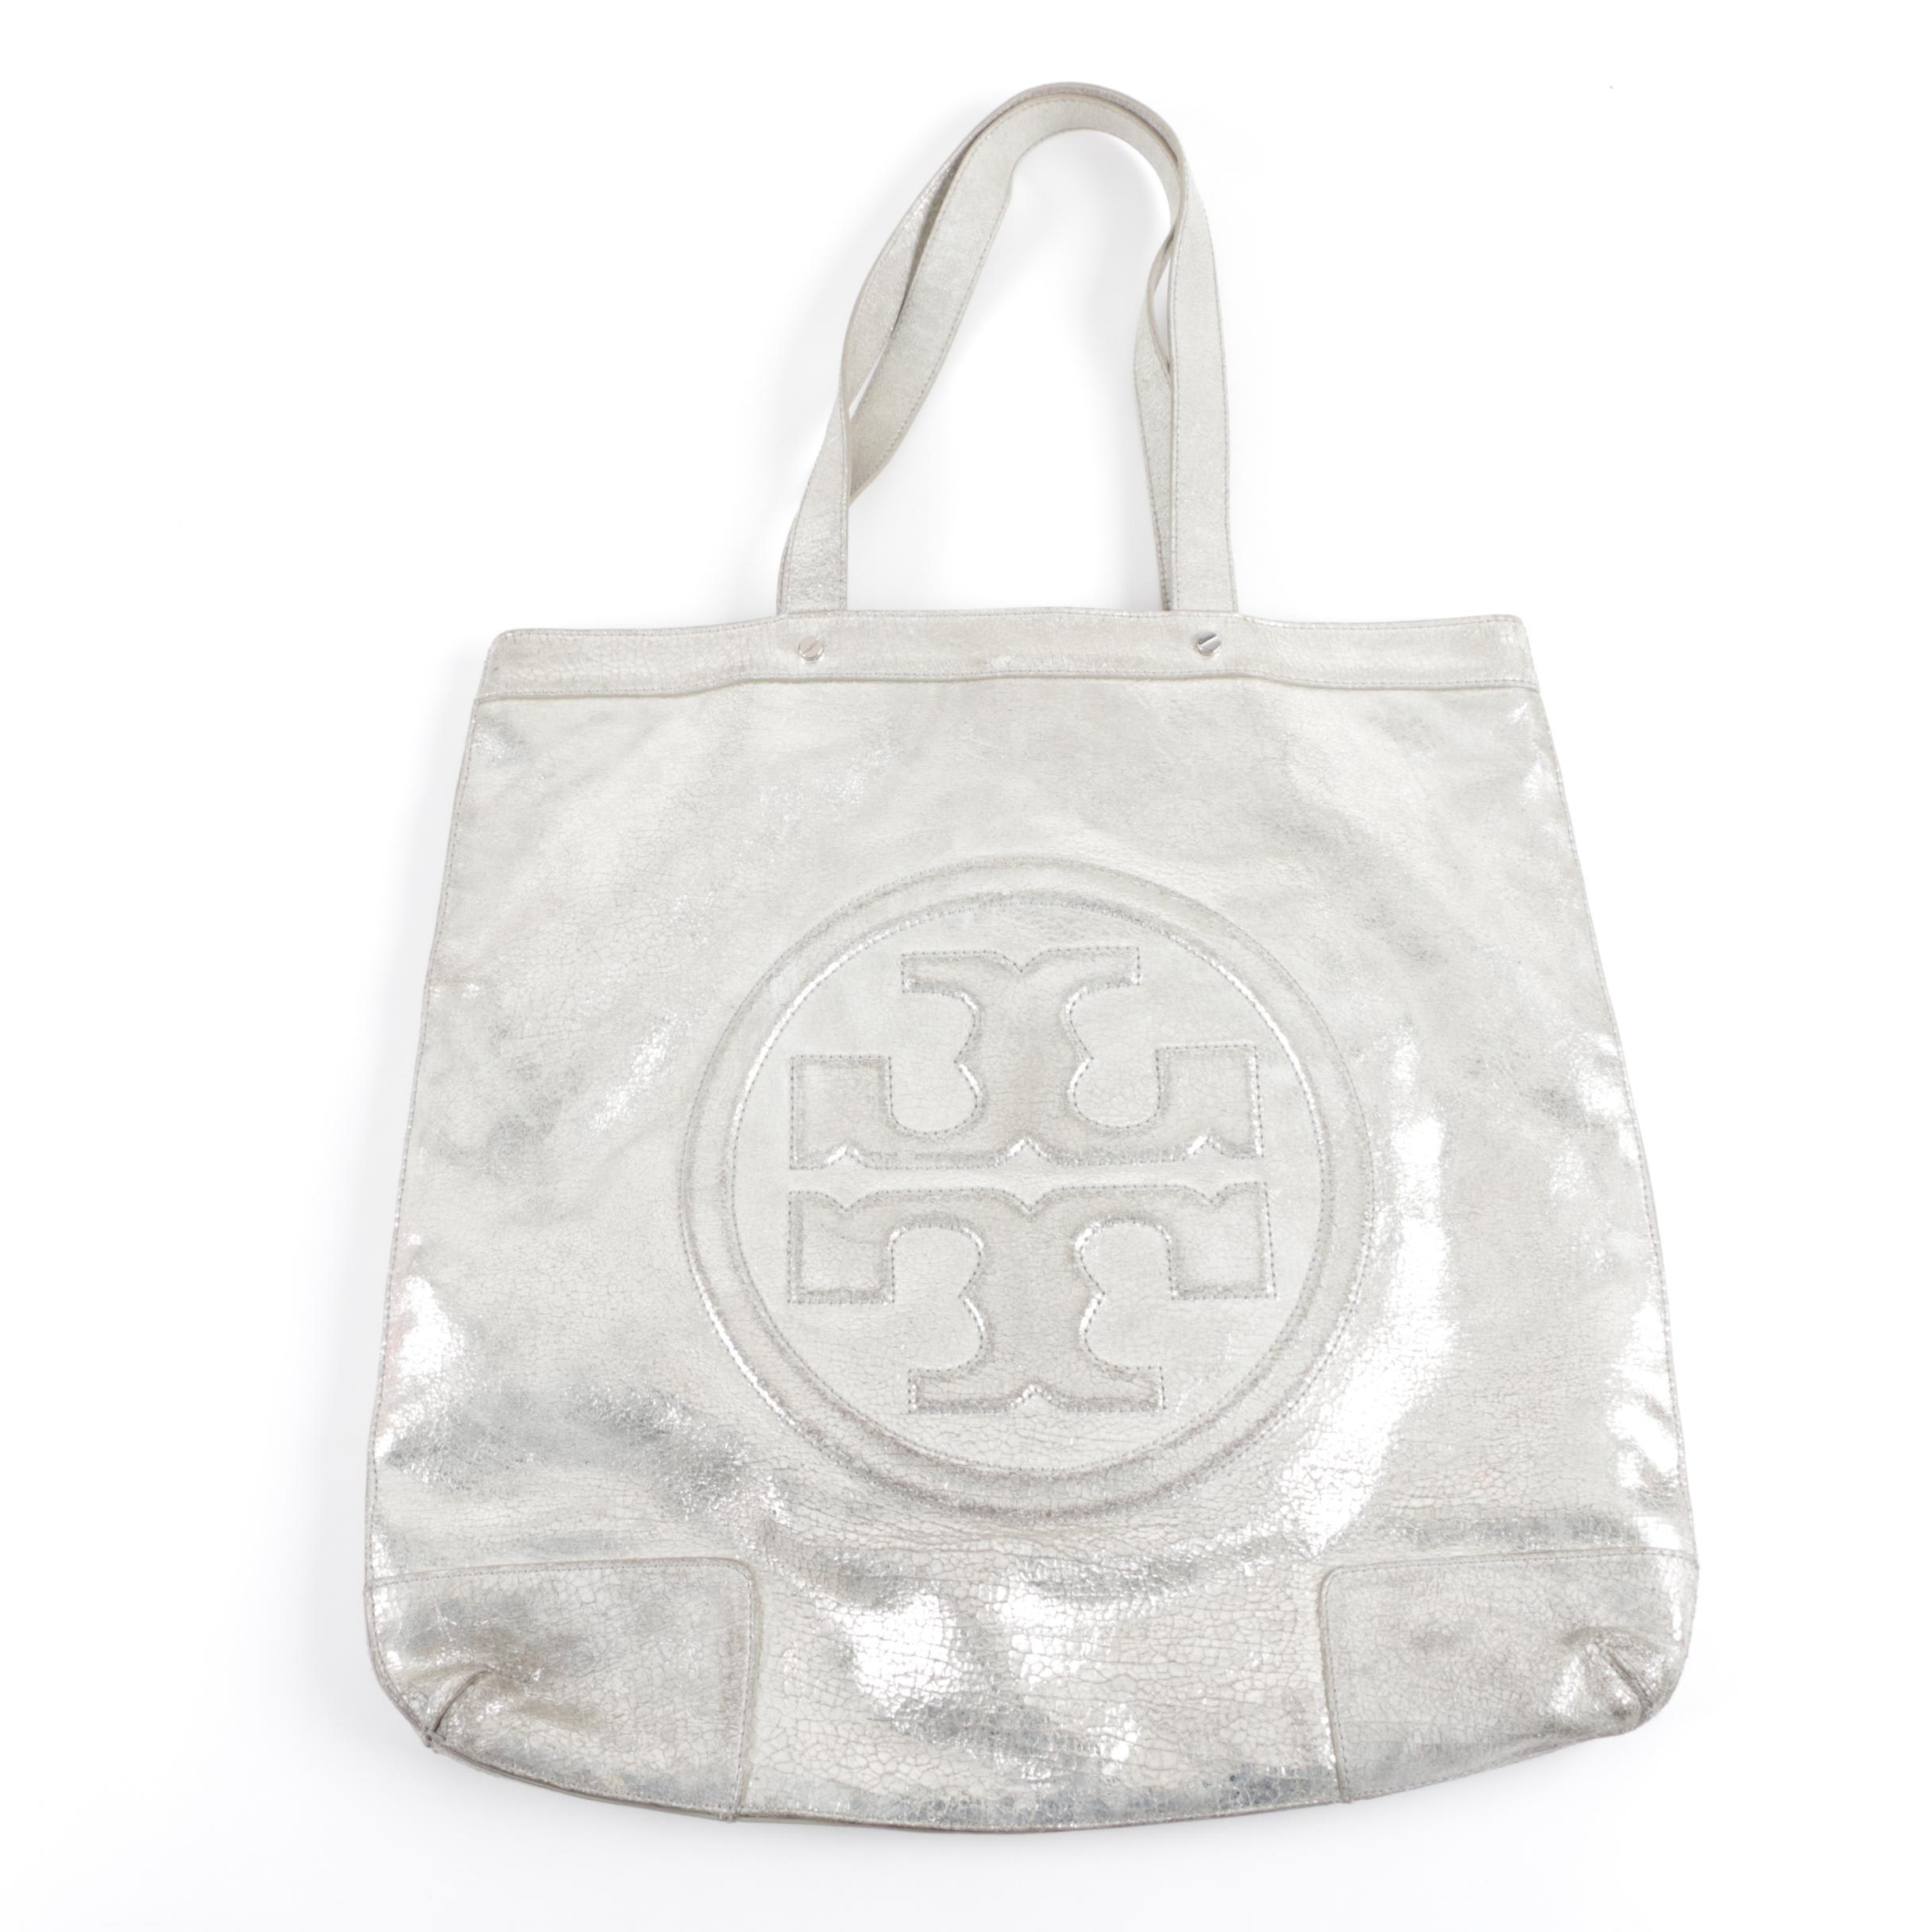 Tory Burch Metallic Silver Leather Logo Tote Handbag